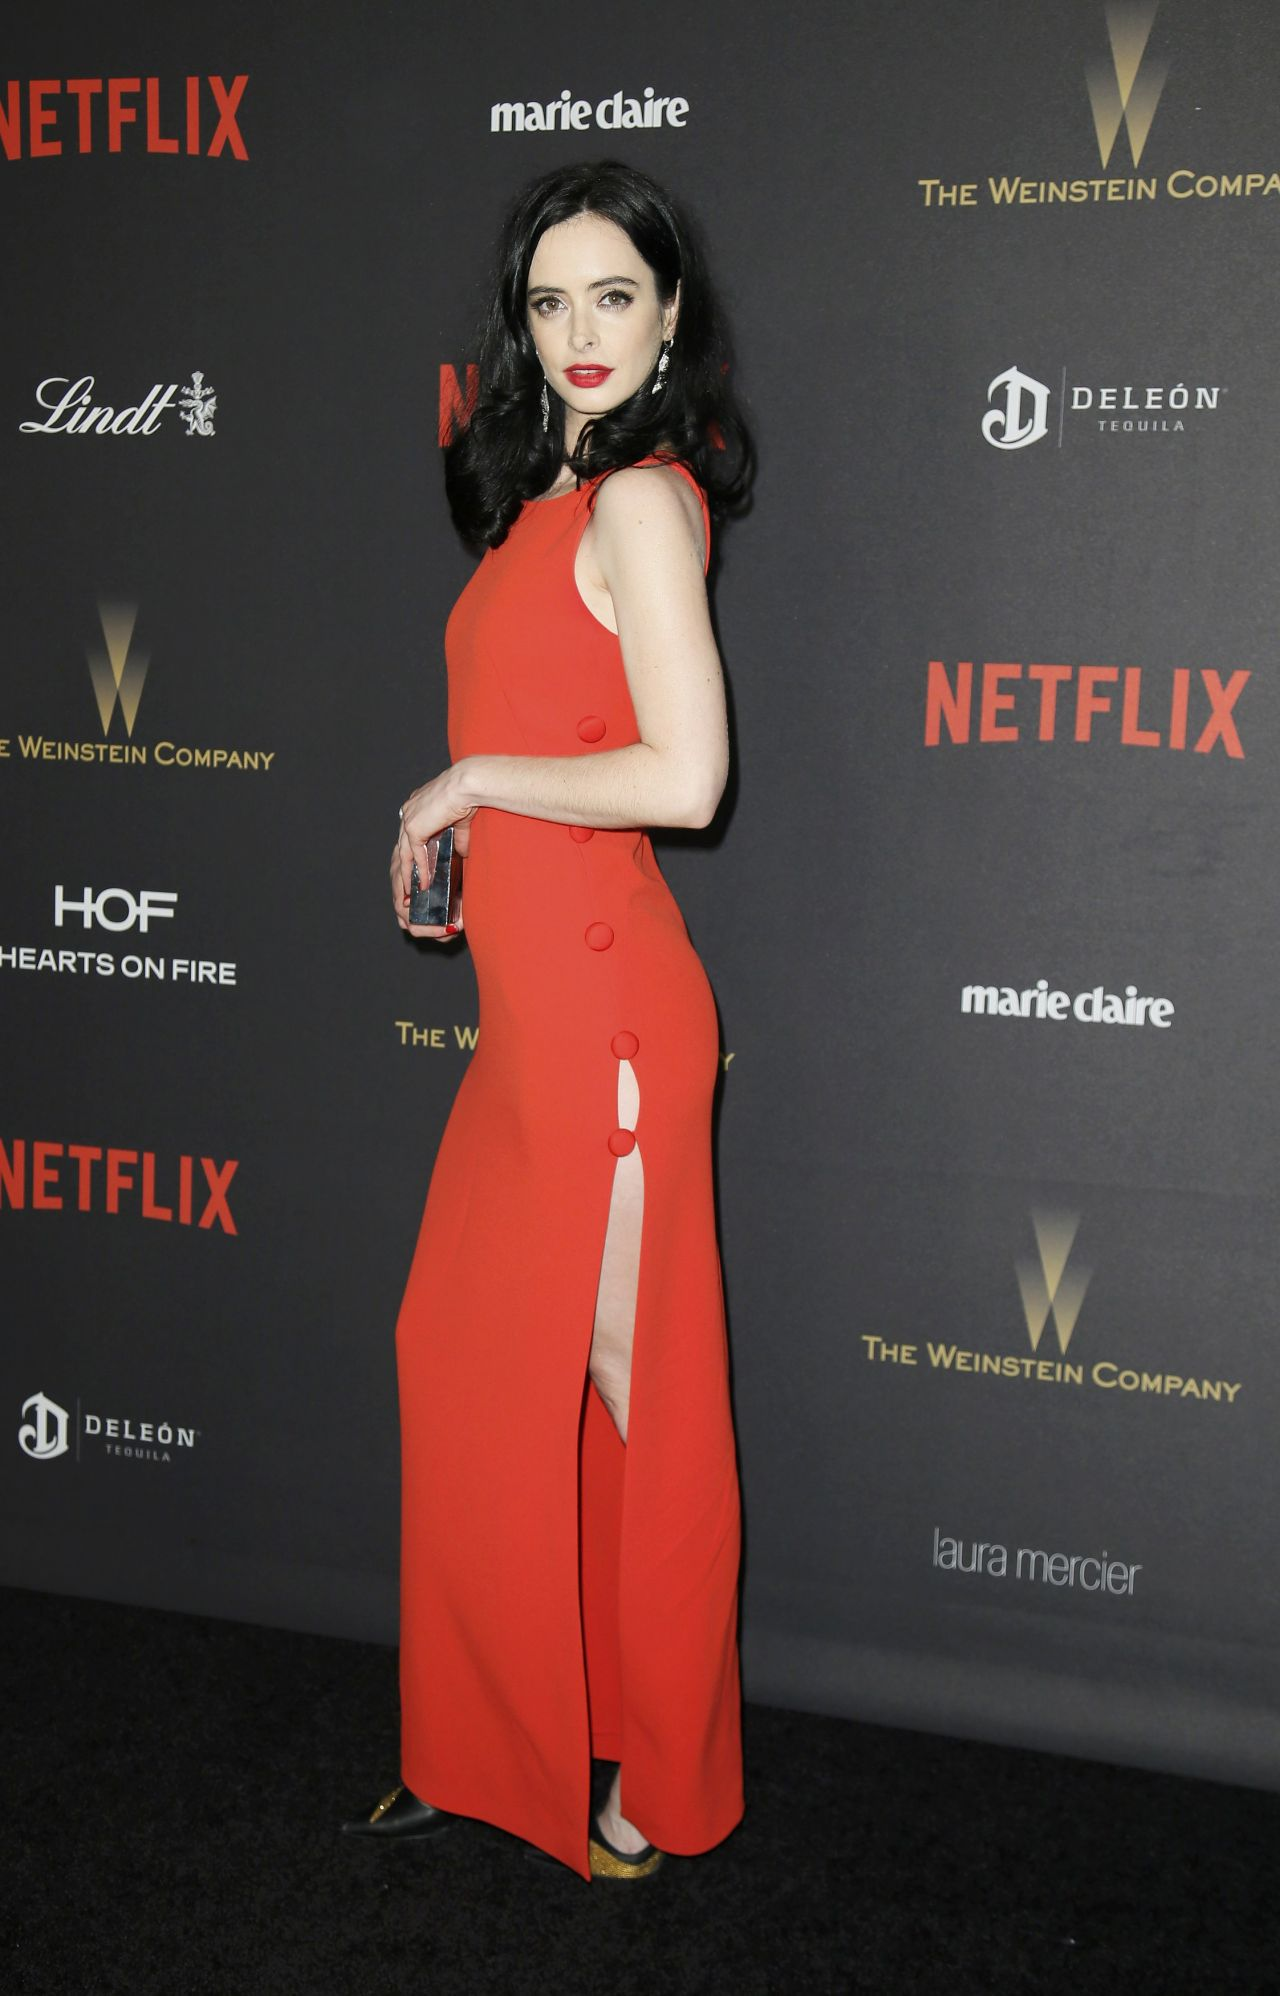 krysten-ritter-the-weinstein-company-netflix-golden-globe2016-after-party-in-beverly-hills-1